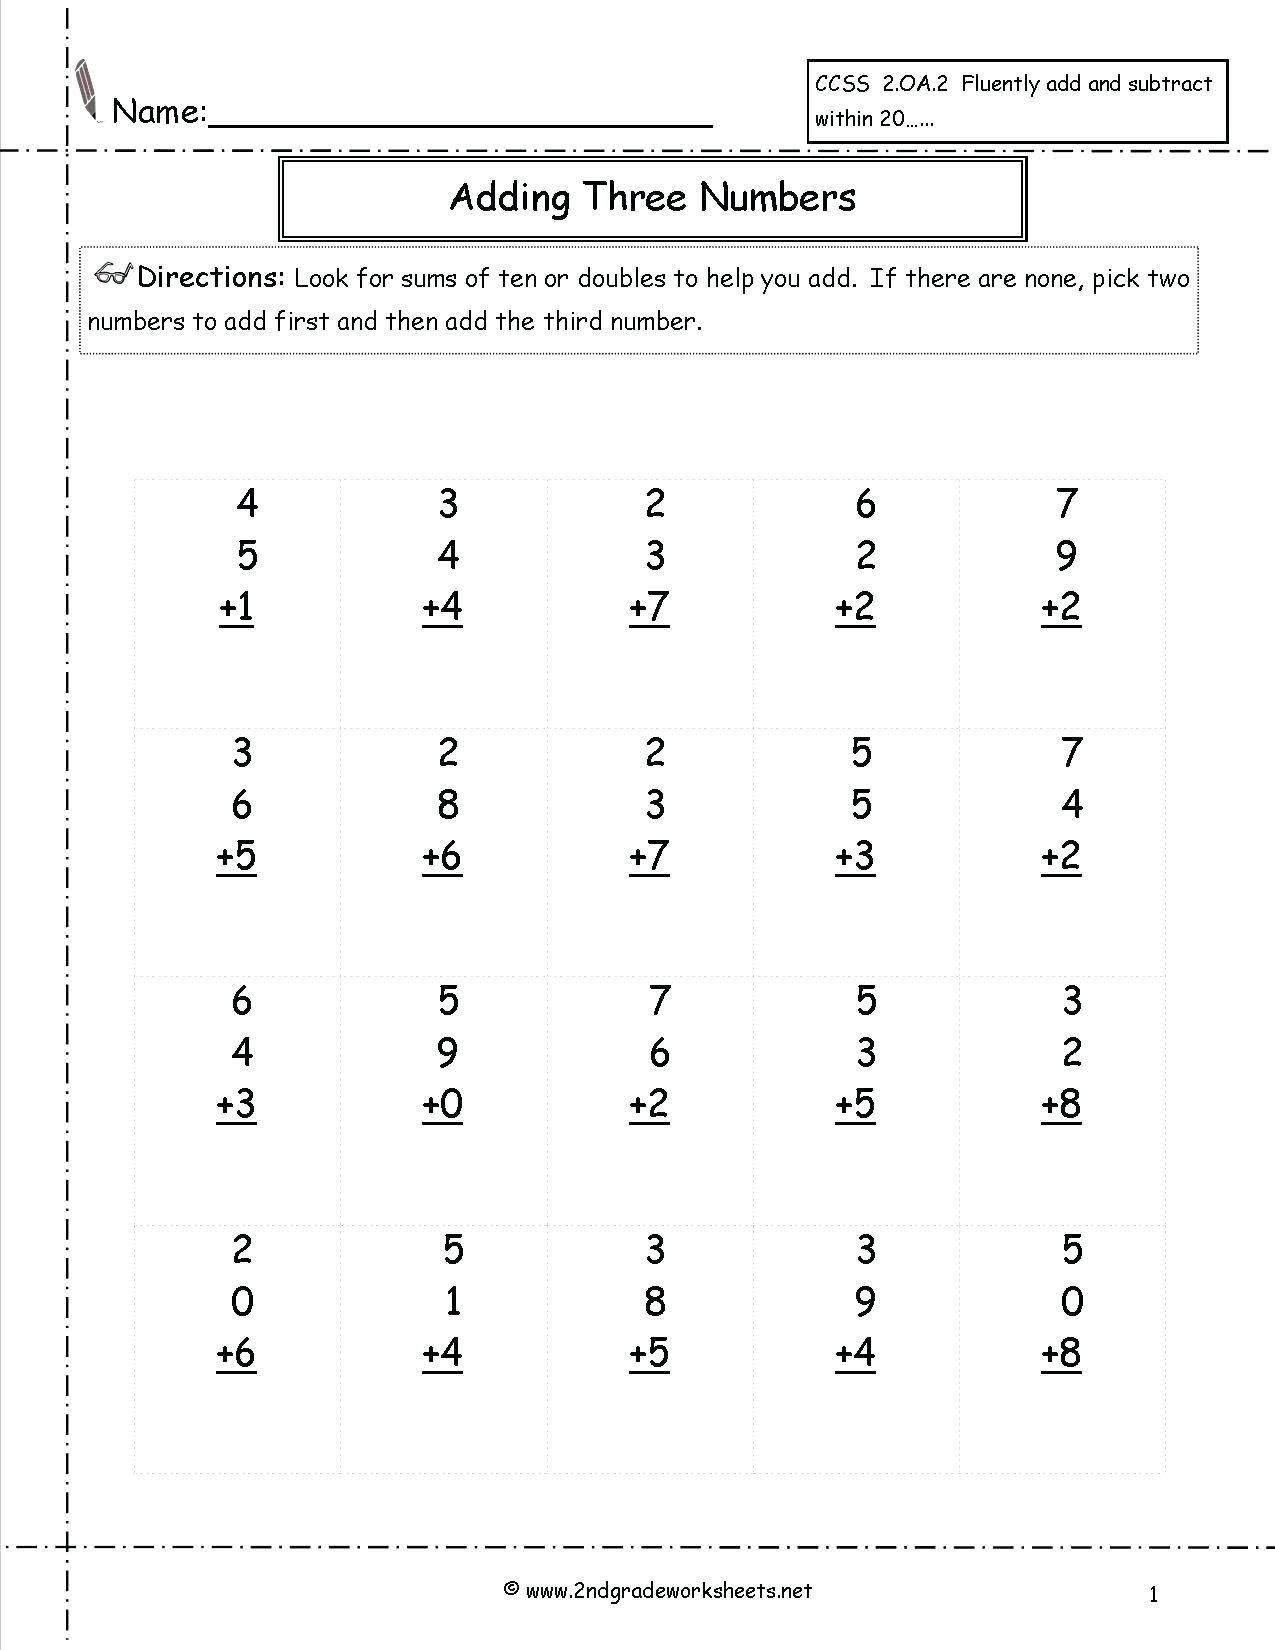 4 Worksheet Free Math Worksheets First Grade 1 Addition Adding Two Single Digit Numbers Sum 2 Free Math Worksheets 2nd Grade Worksheets Basic Math Worksheets Addition drill worksheets second grade